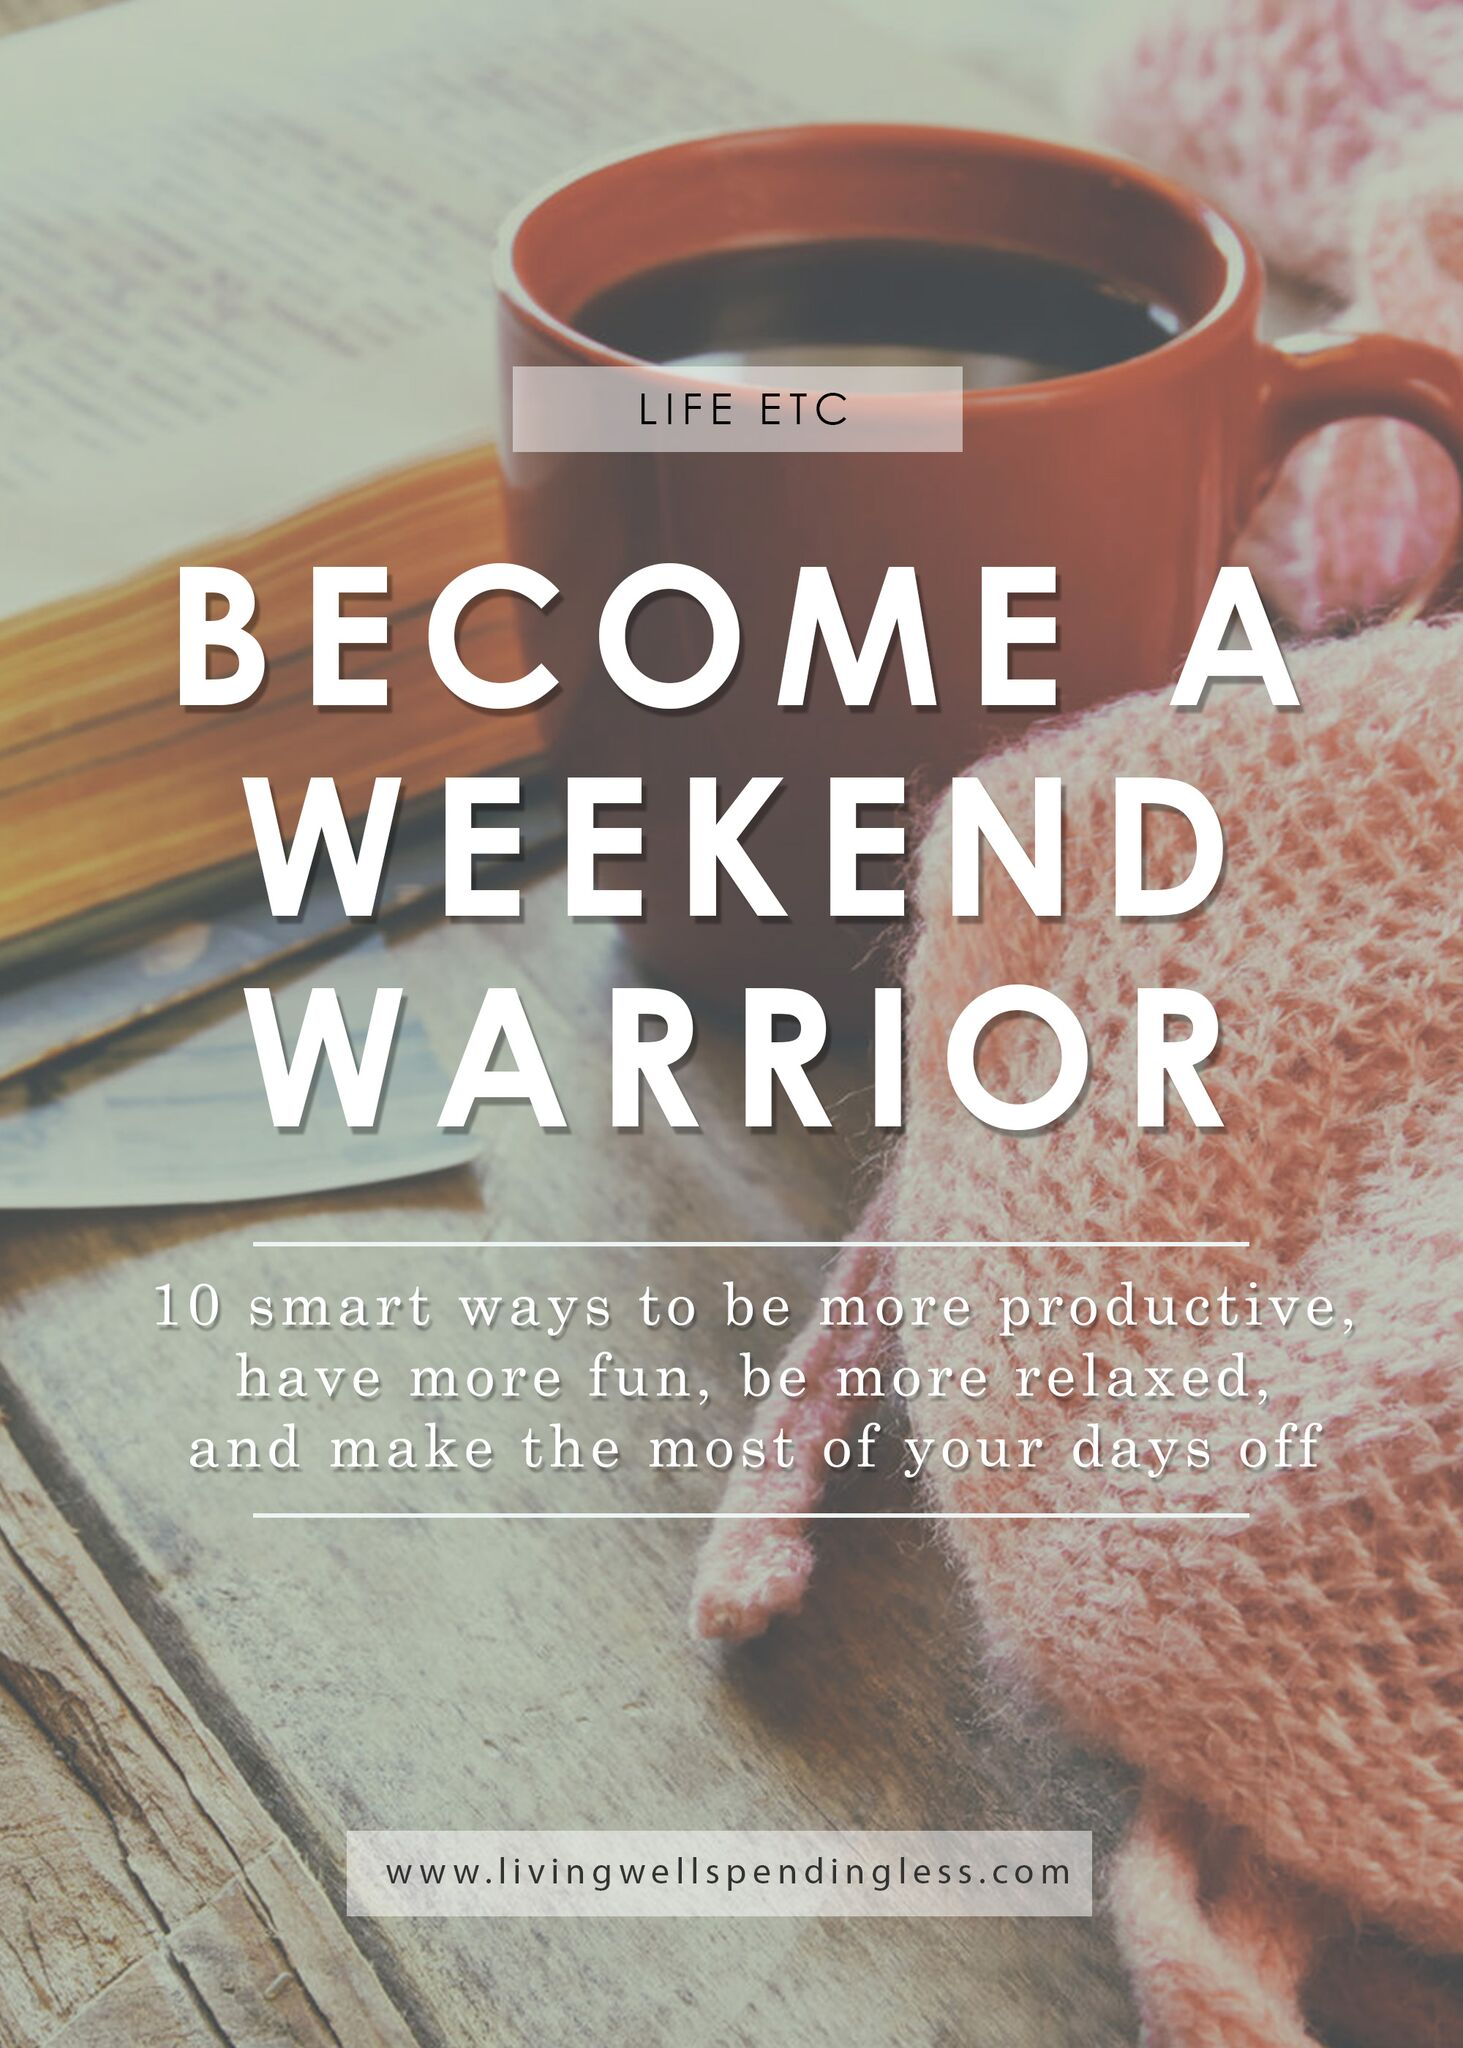 Become a Weekend Warrior | 10 Ways to Make the Most of Your Free Days | Productive Living Tips | 3 Day Weekend Tips | Fun Weekend Tips |